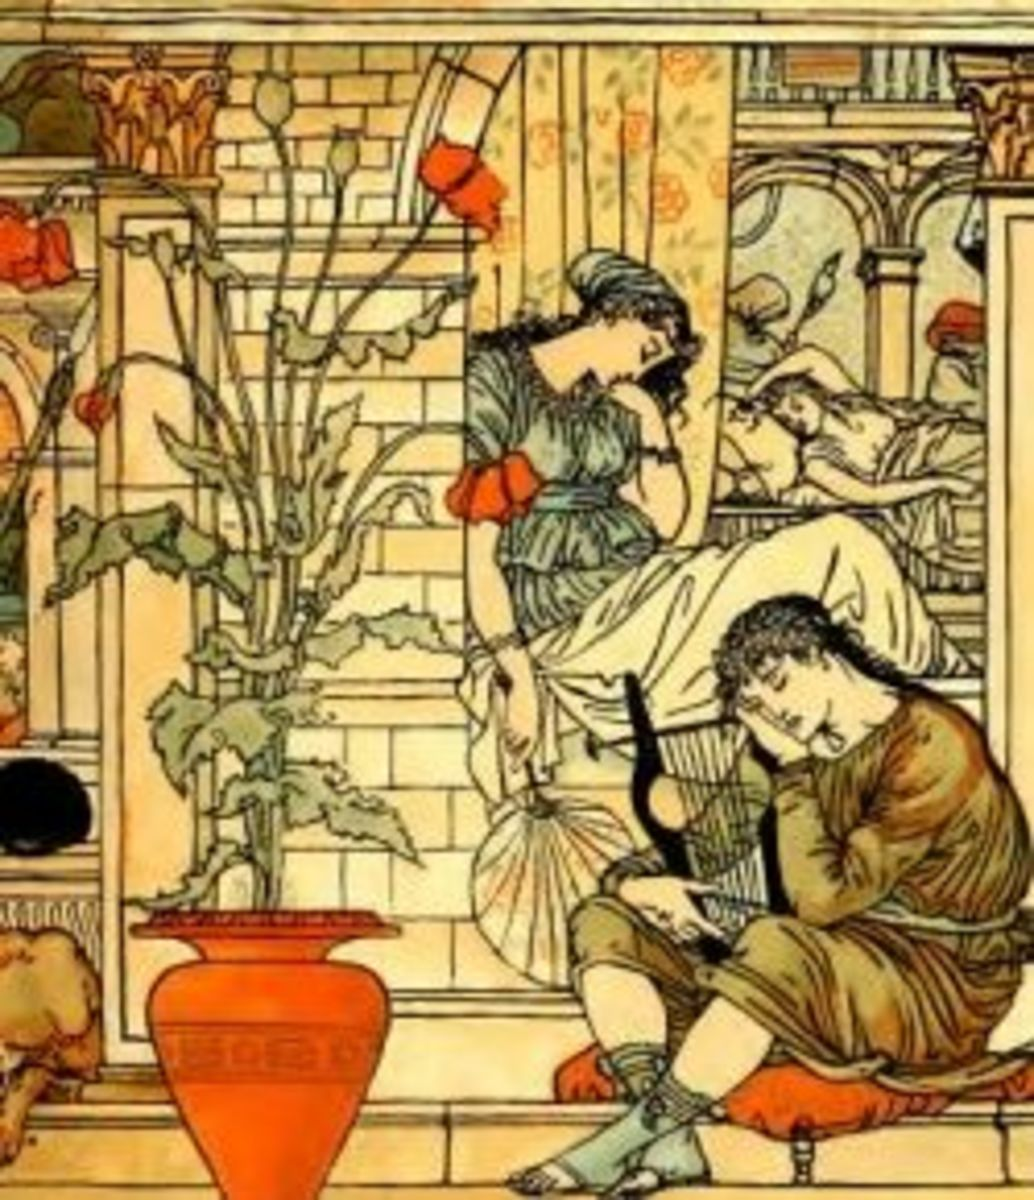 In winter everything sleeps (by Walter Crane)